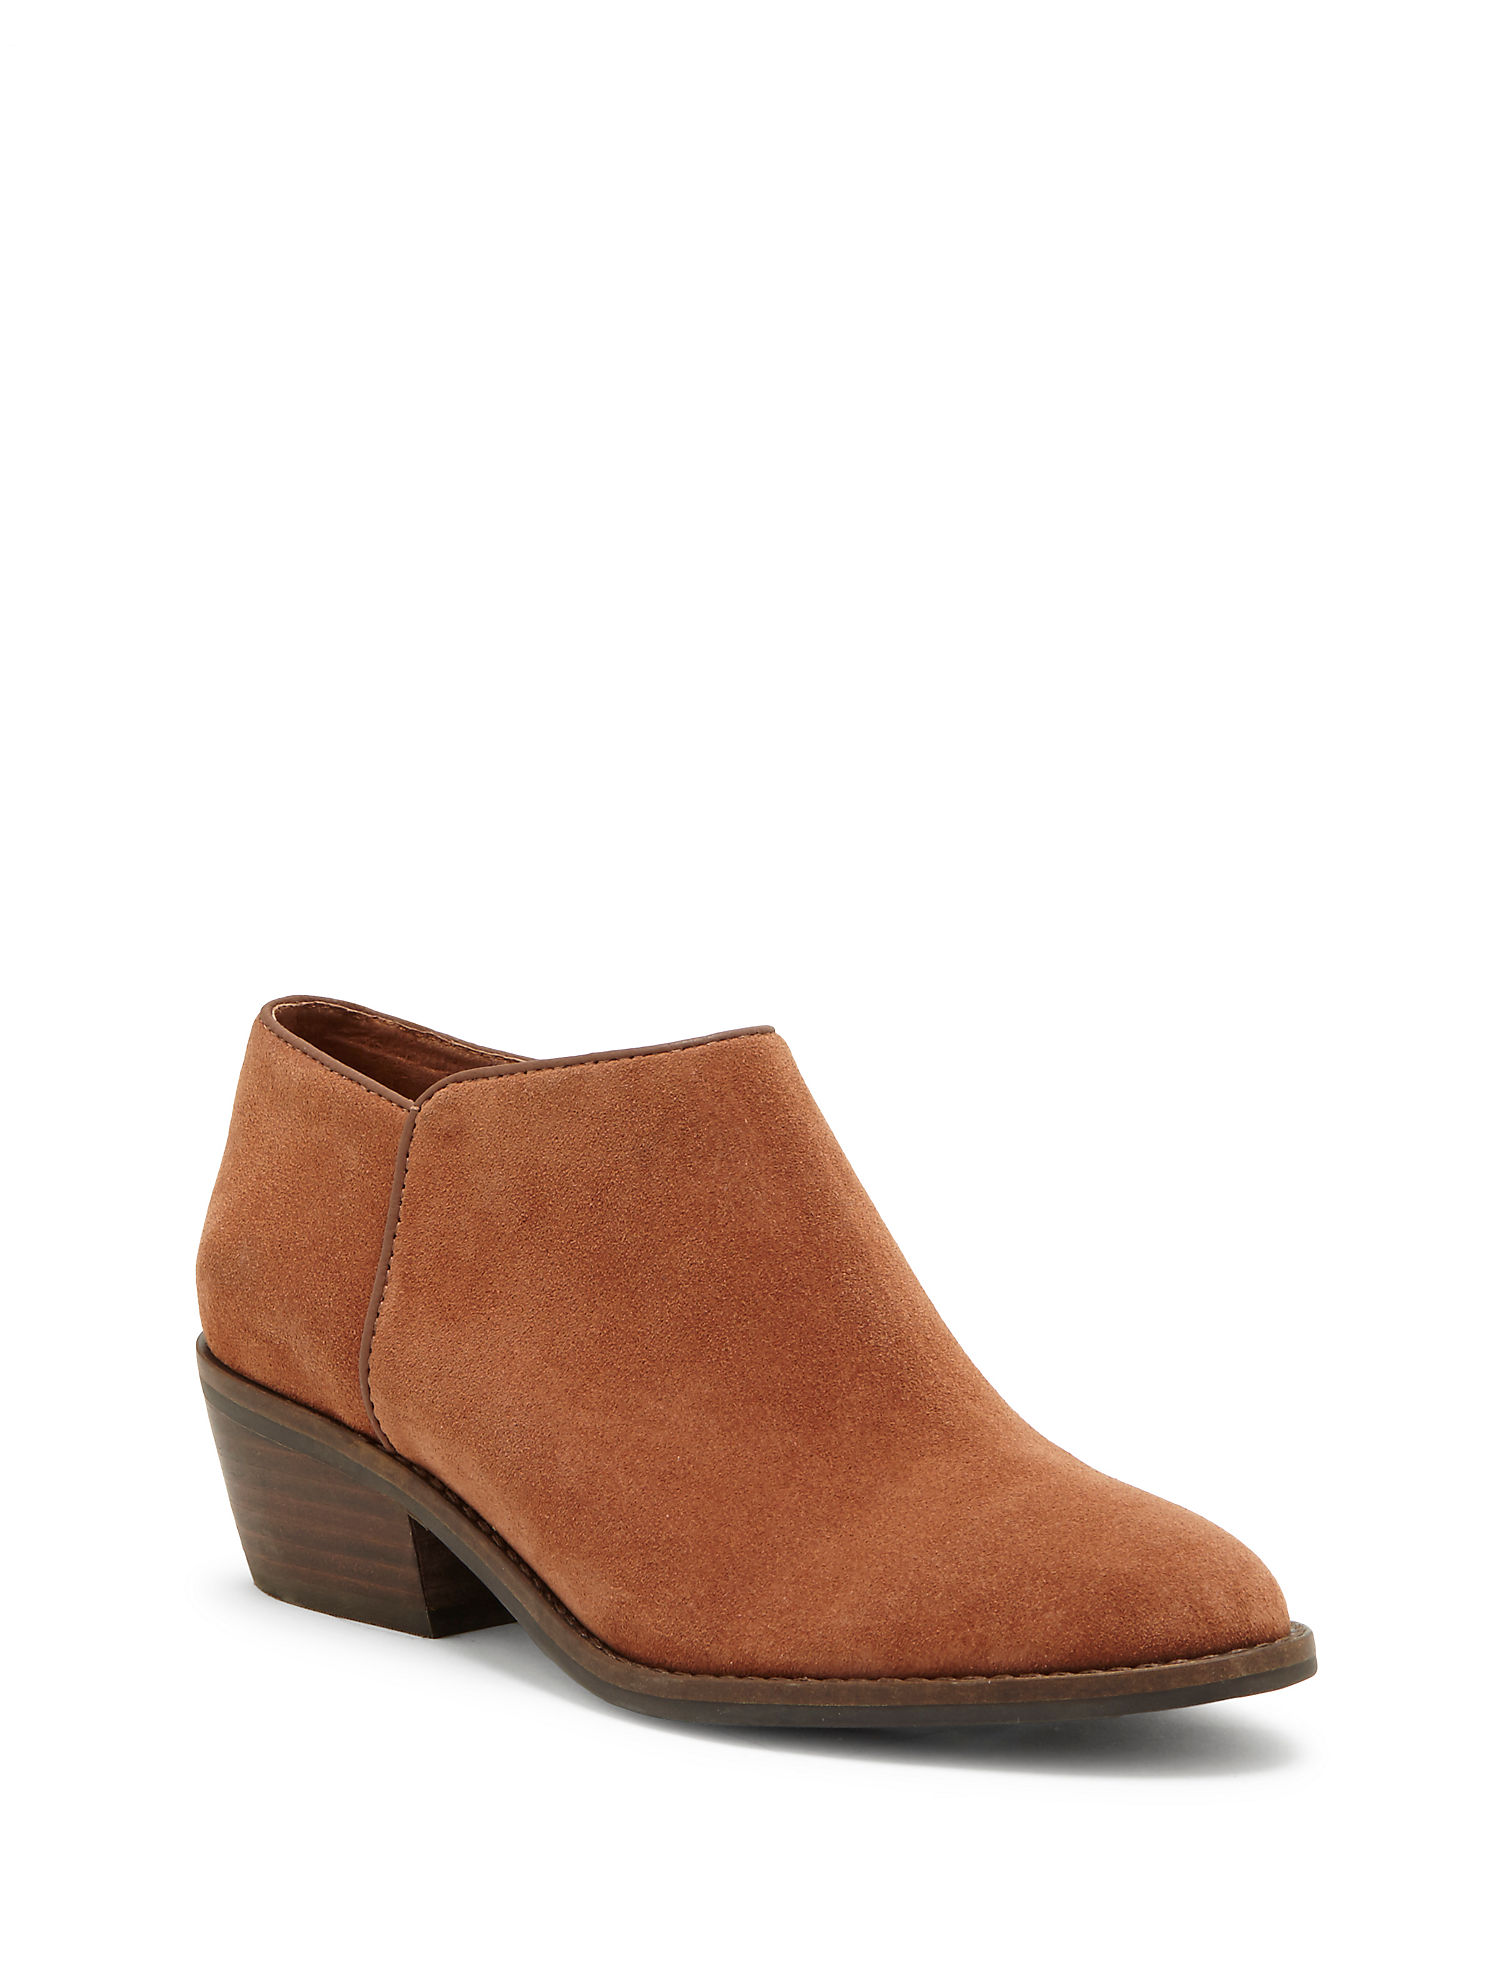 Lucky Brand faithly bootie brown chestnut leather suede women's boots